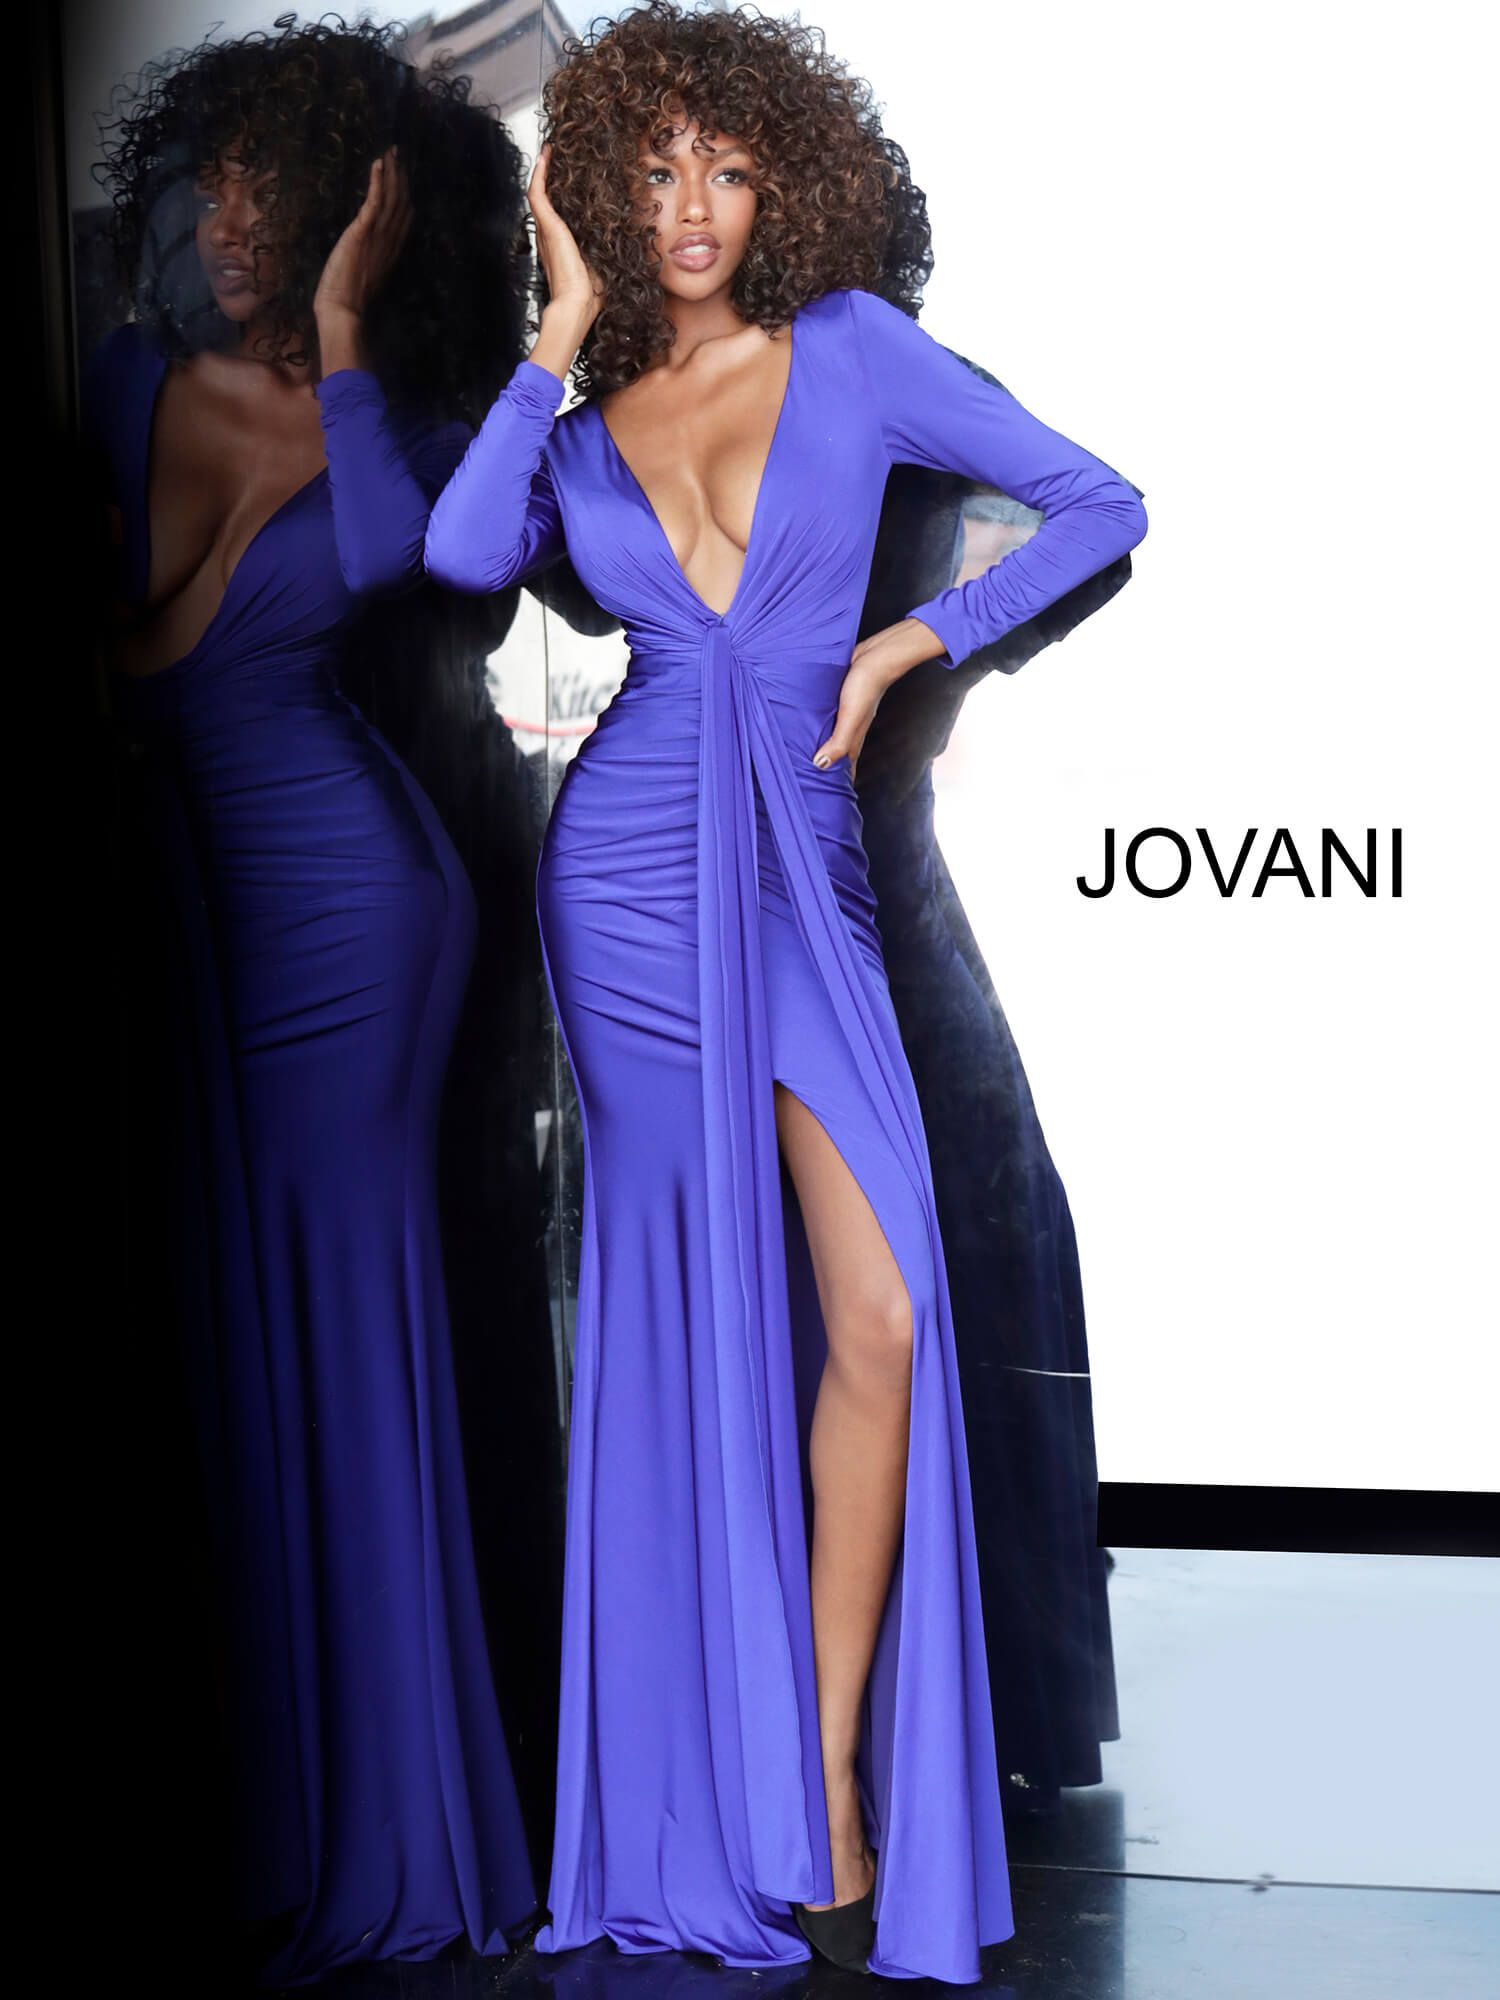 Jovani 2020 Prom Pageant Evening Formal Wear Designer